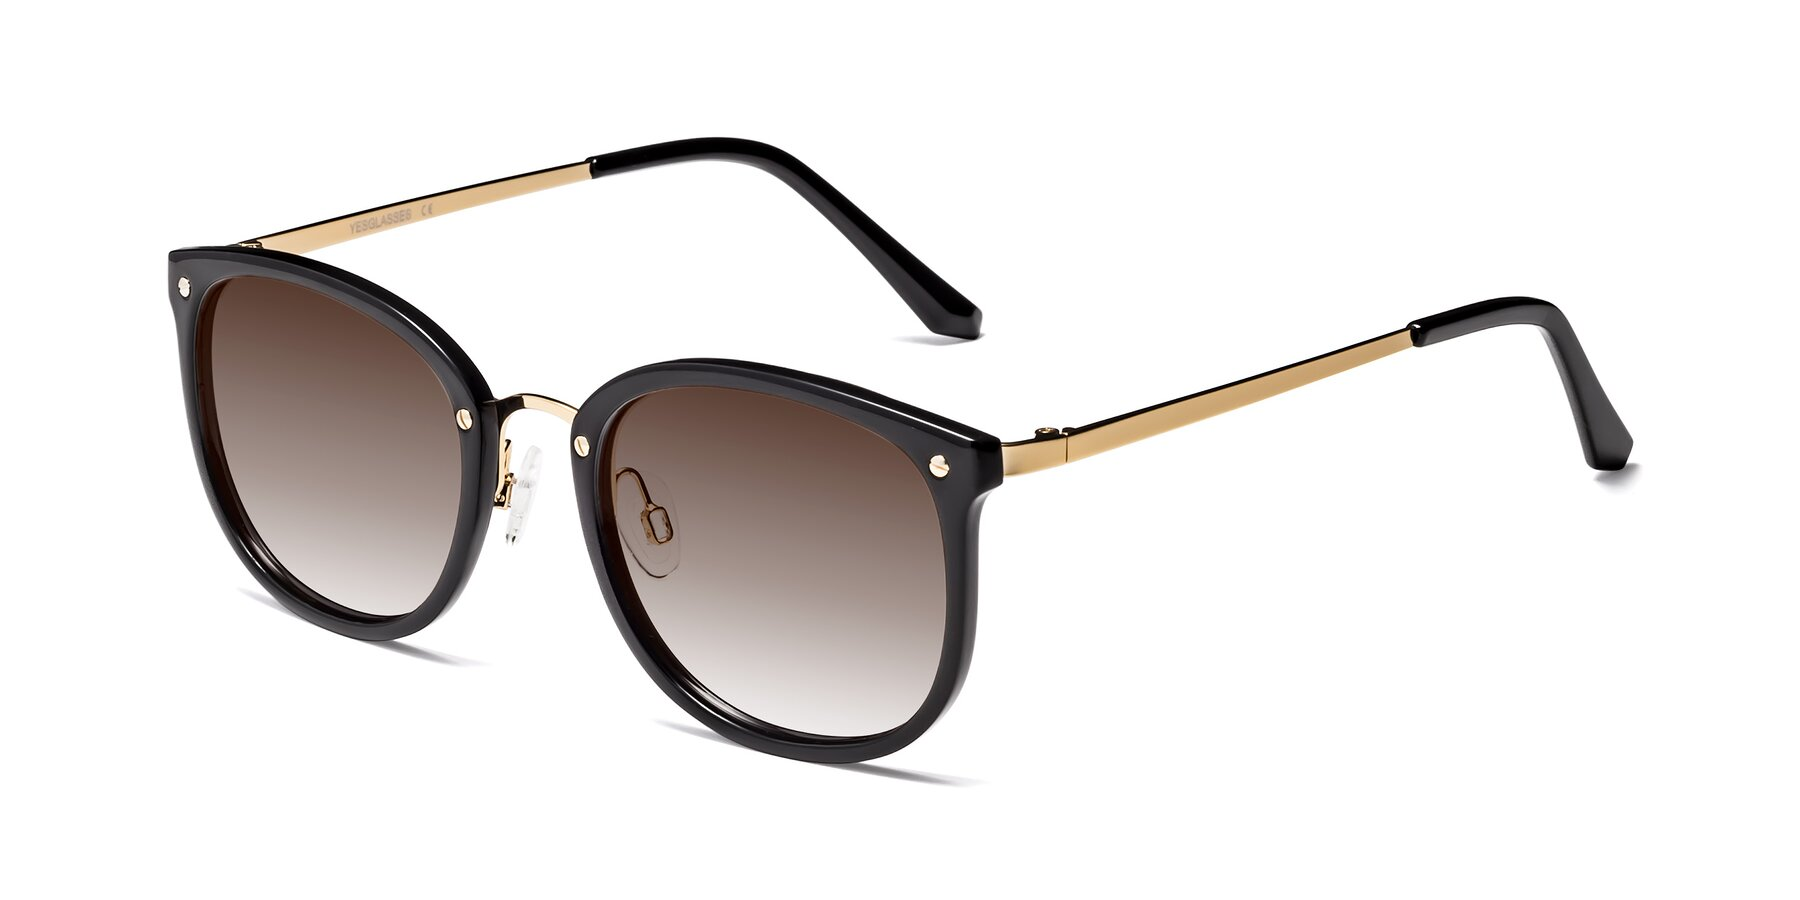 Angle of Timeless in Black-Gold with Brown Gradient Lenses